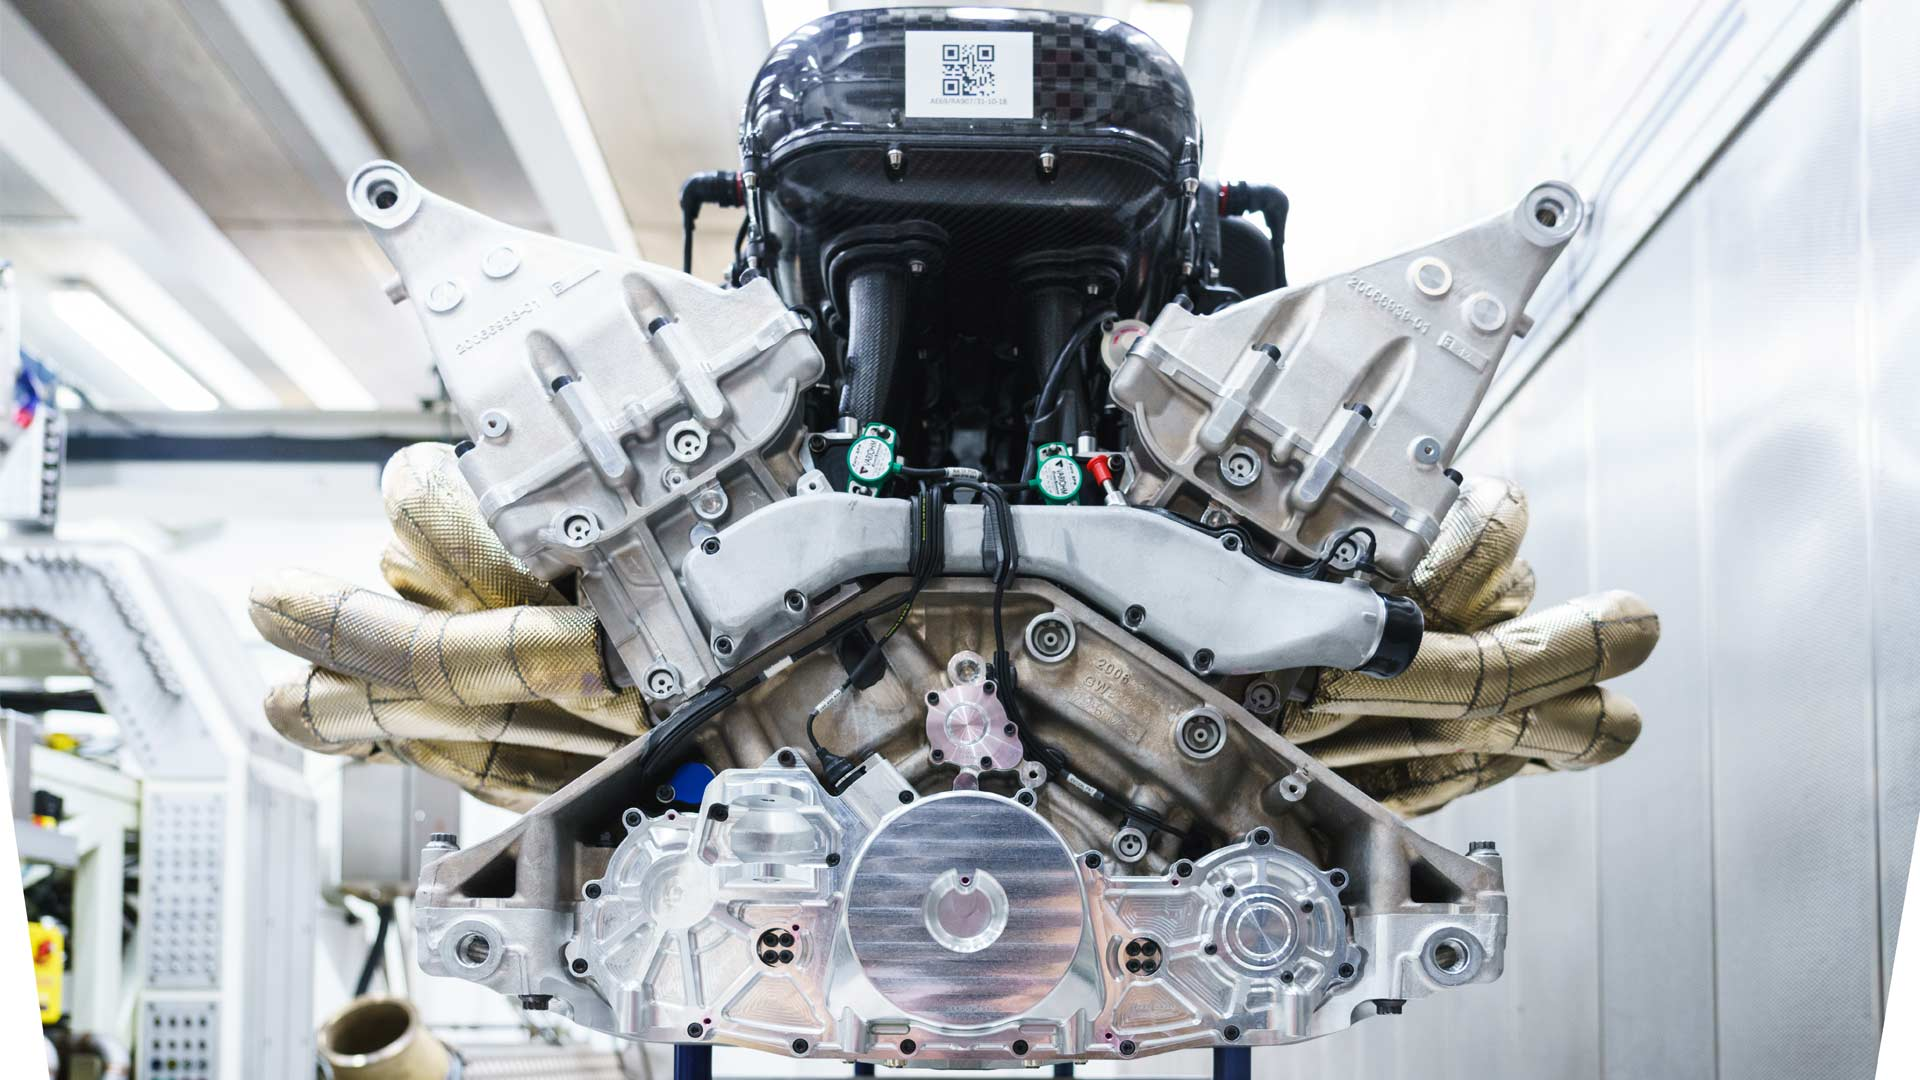 Aston-Martin-Valkyrie-V12-Engine-Cosworth_2